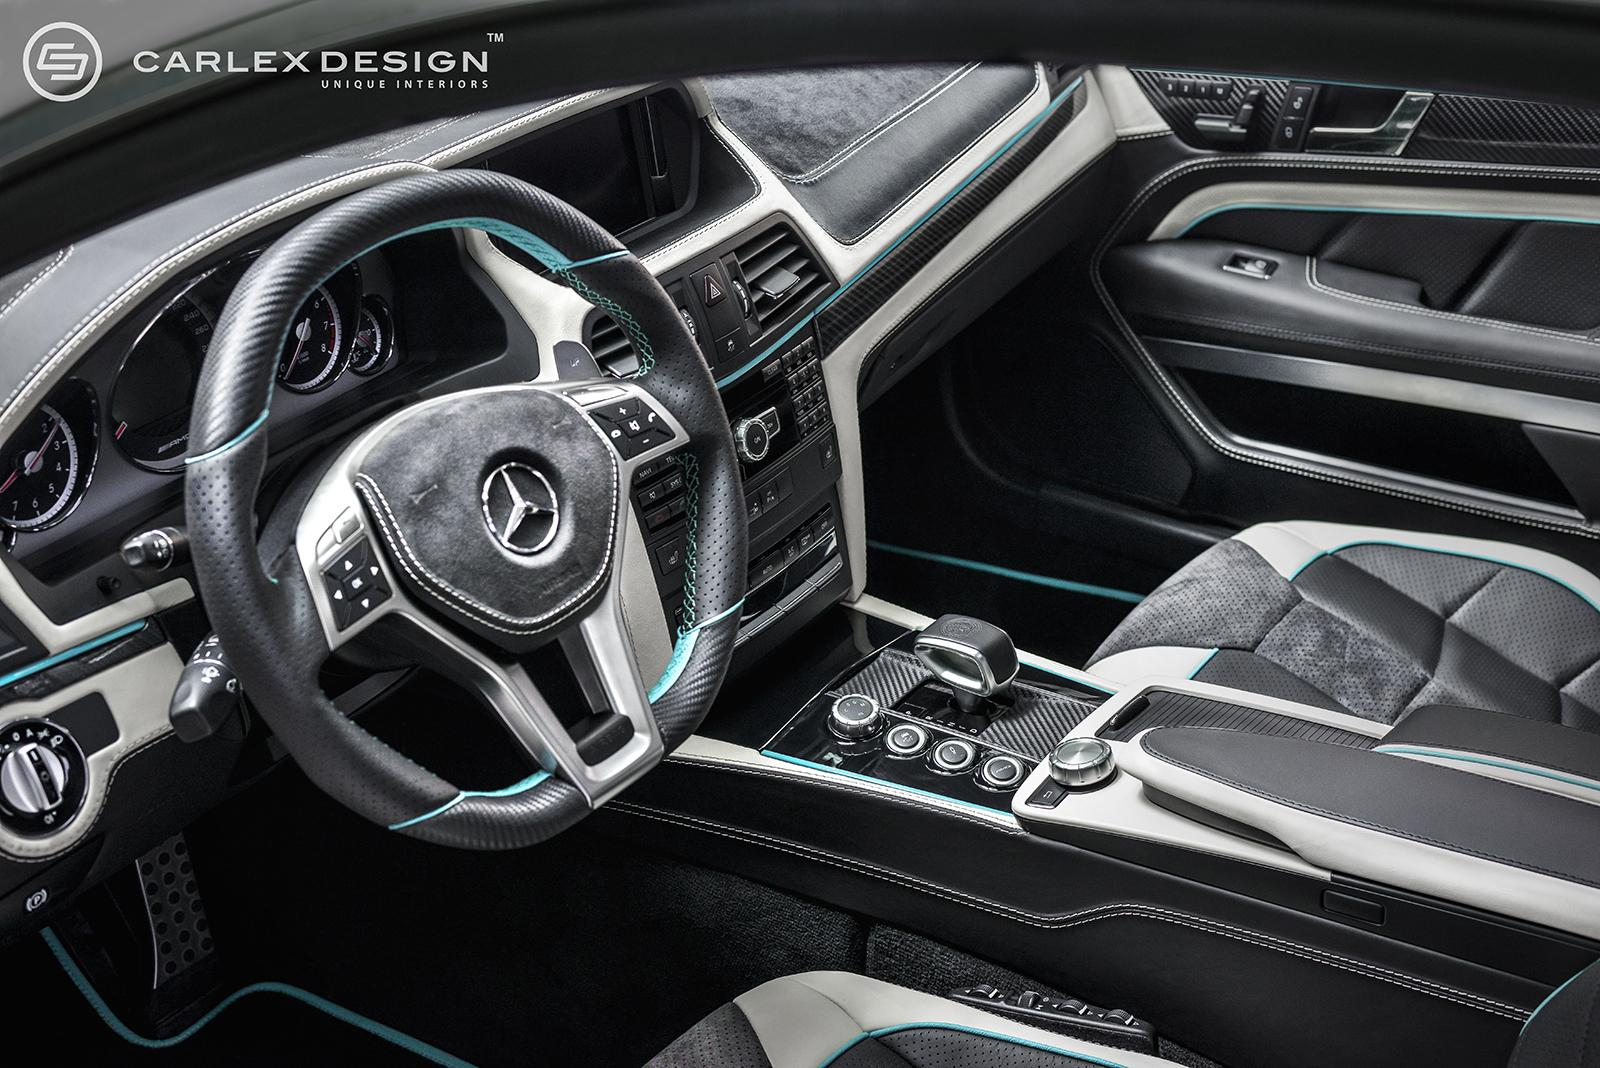 ... Carlex Design Mercedes-Benz E63 AMG interior visual makeover ...